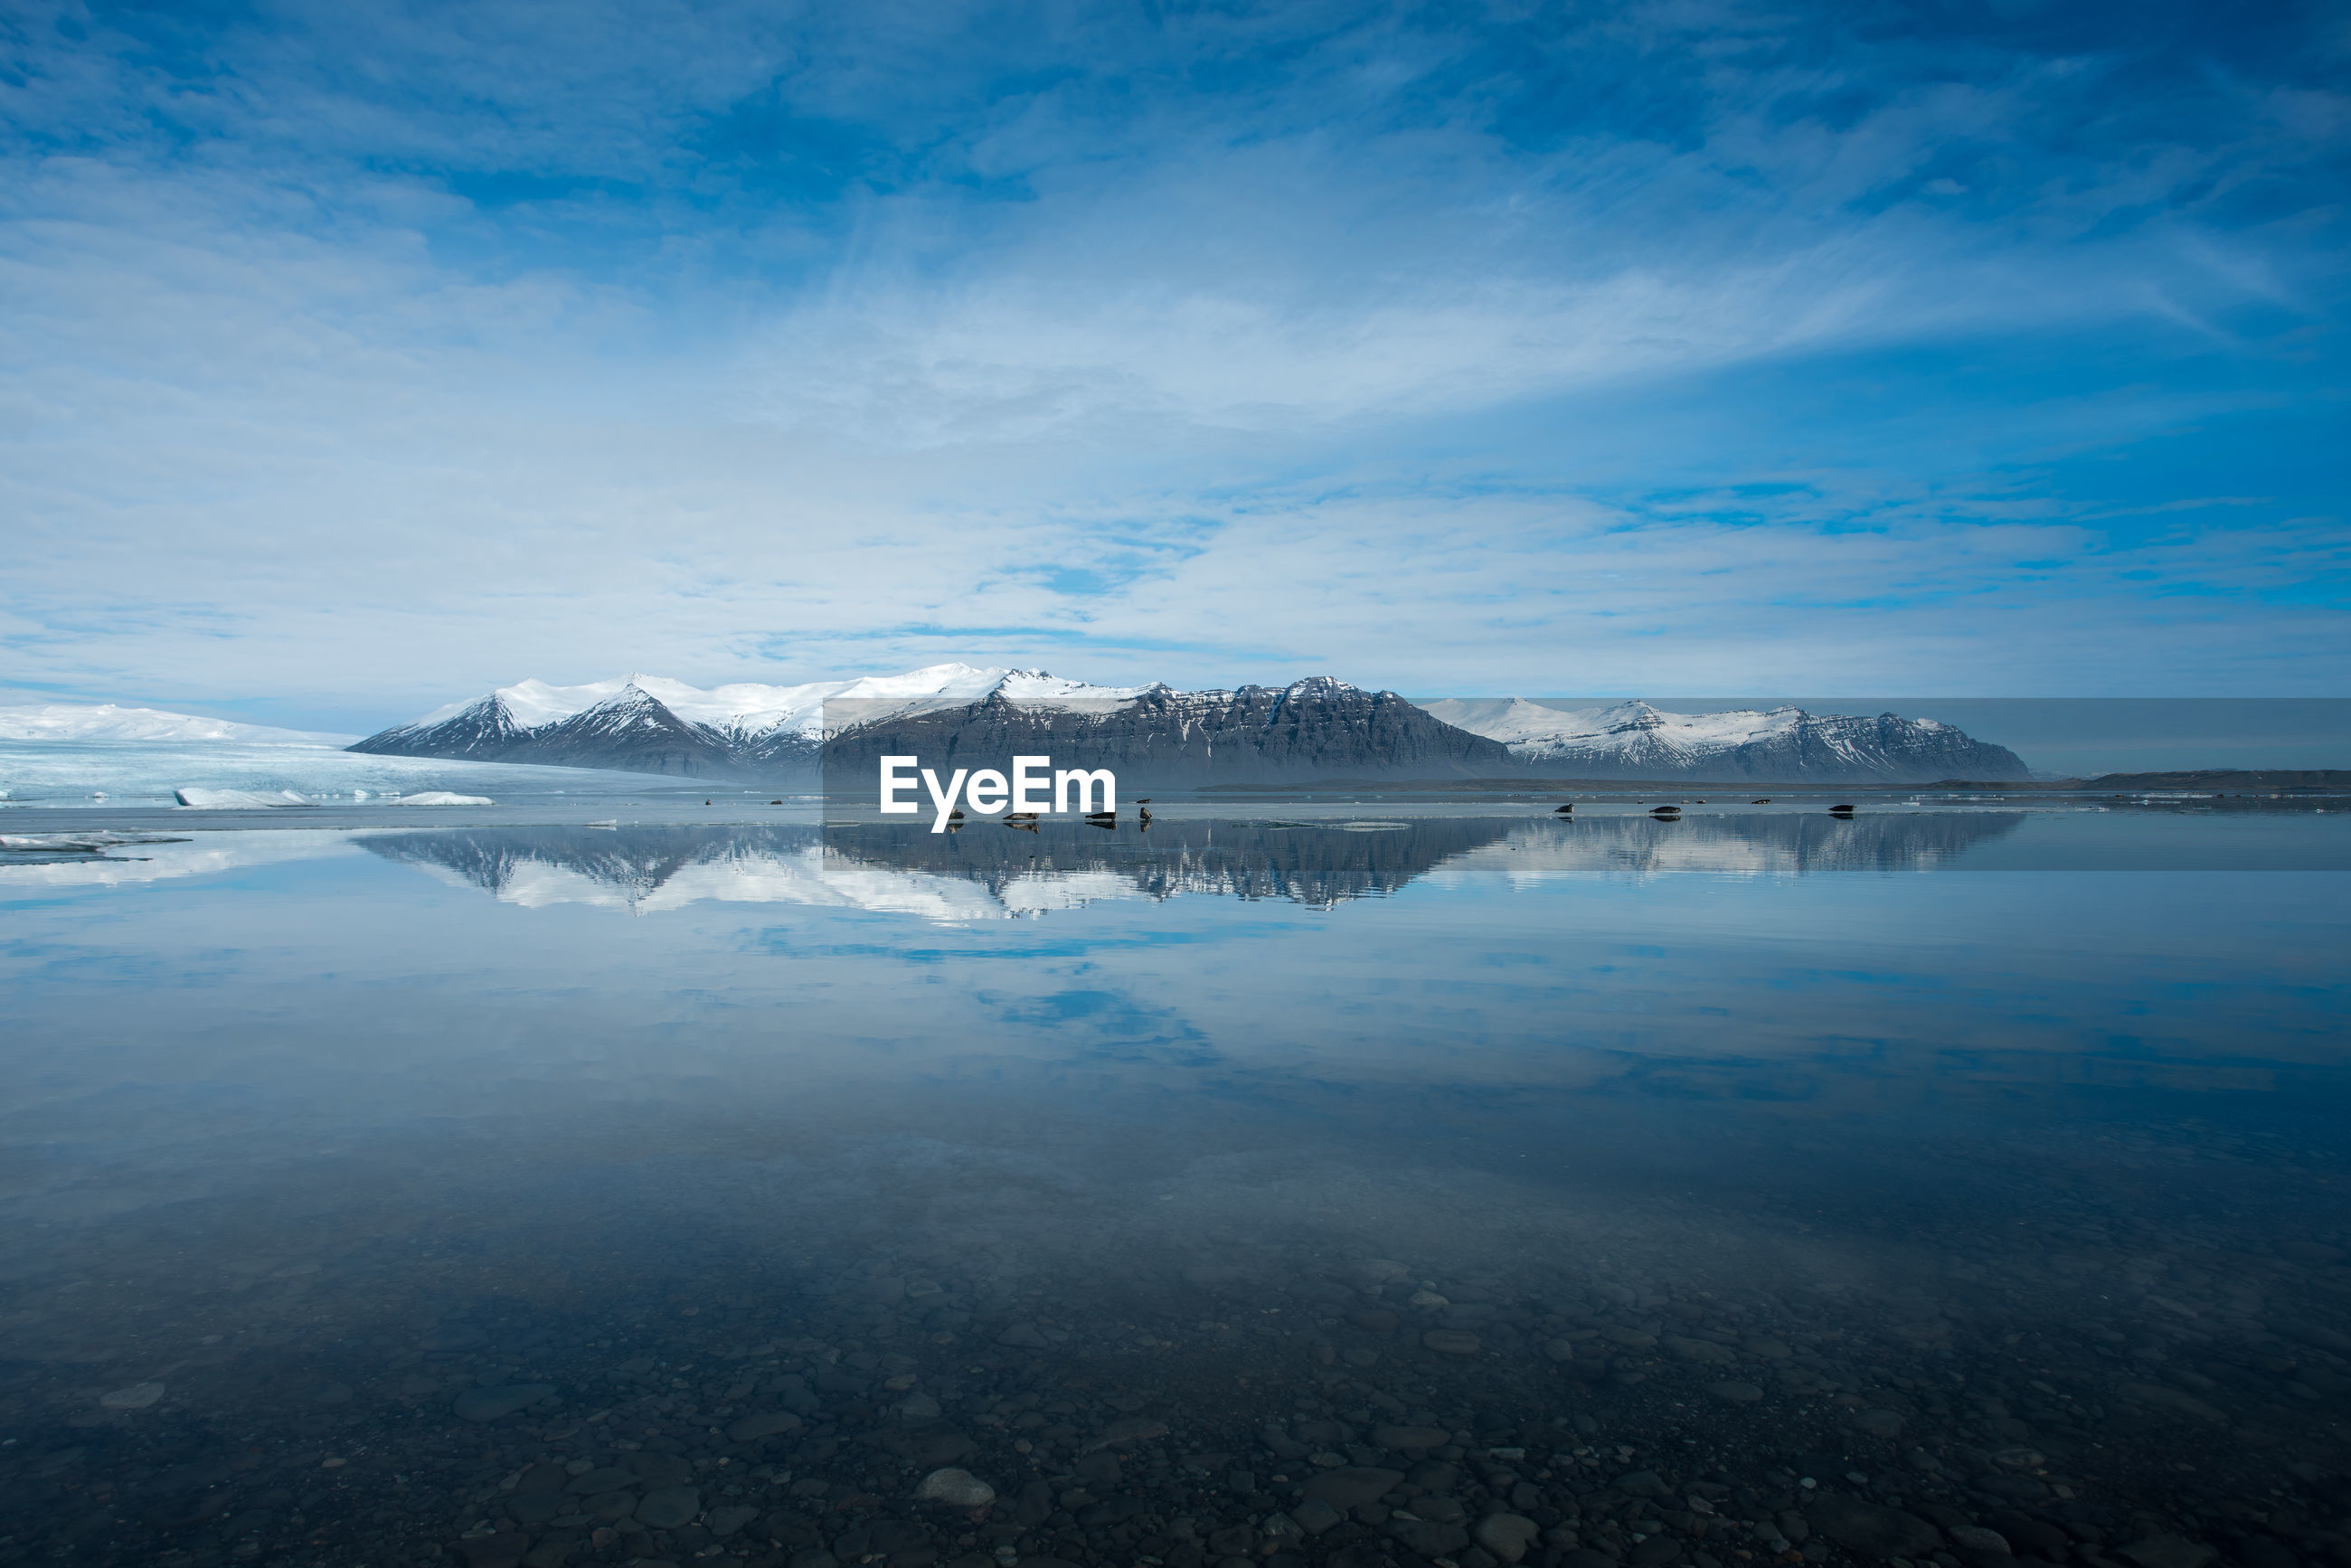 Scenic view of sea by mountains against blue sky during winter